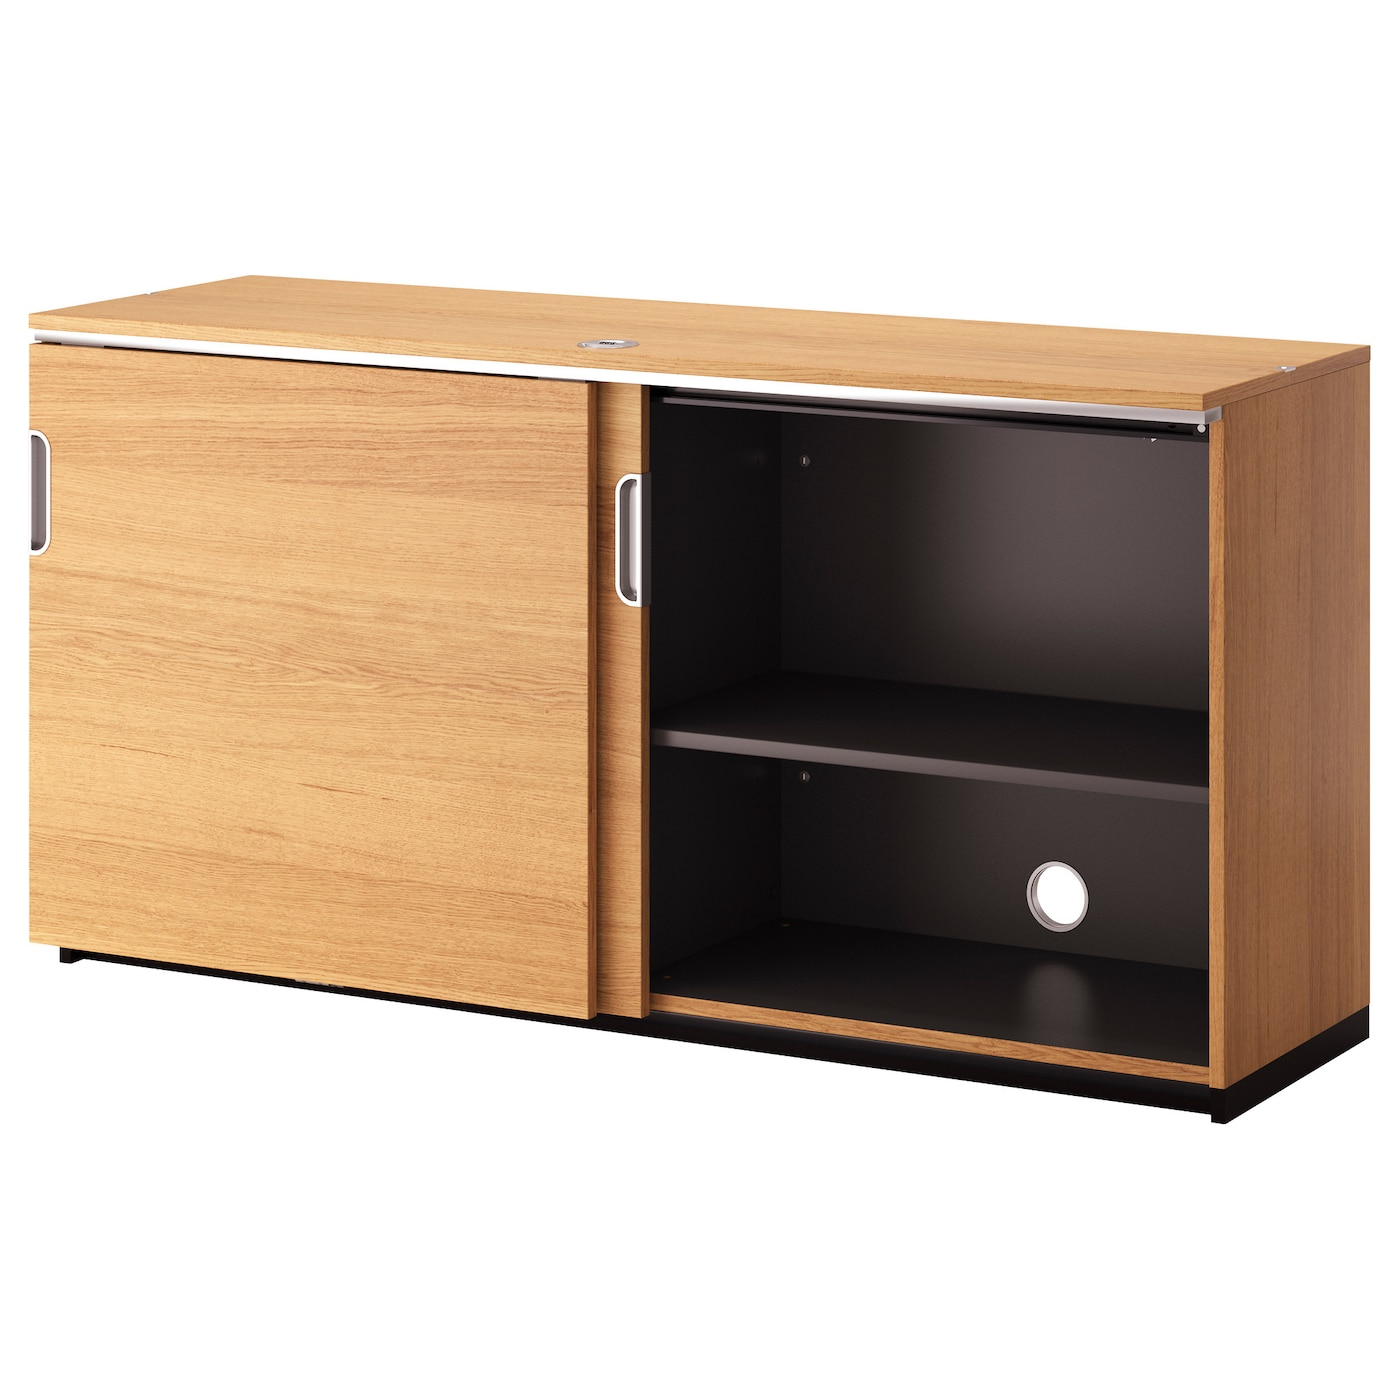 Galant cabinet with sliding doors oak veneer 160 x 80 cm - Ikea cabinet doors on existing cabinets ...